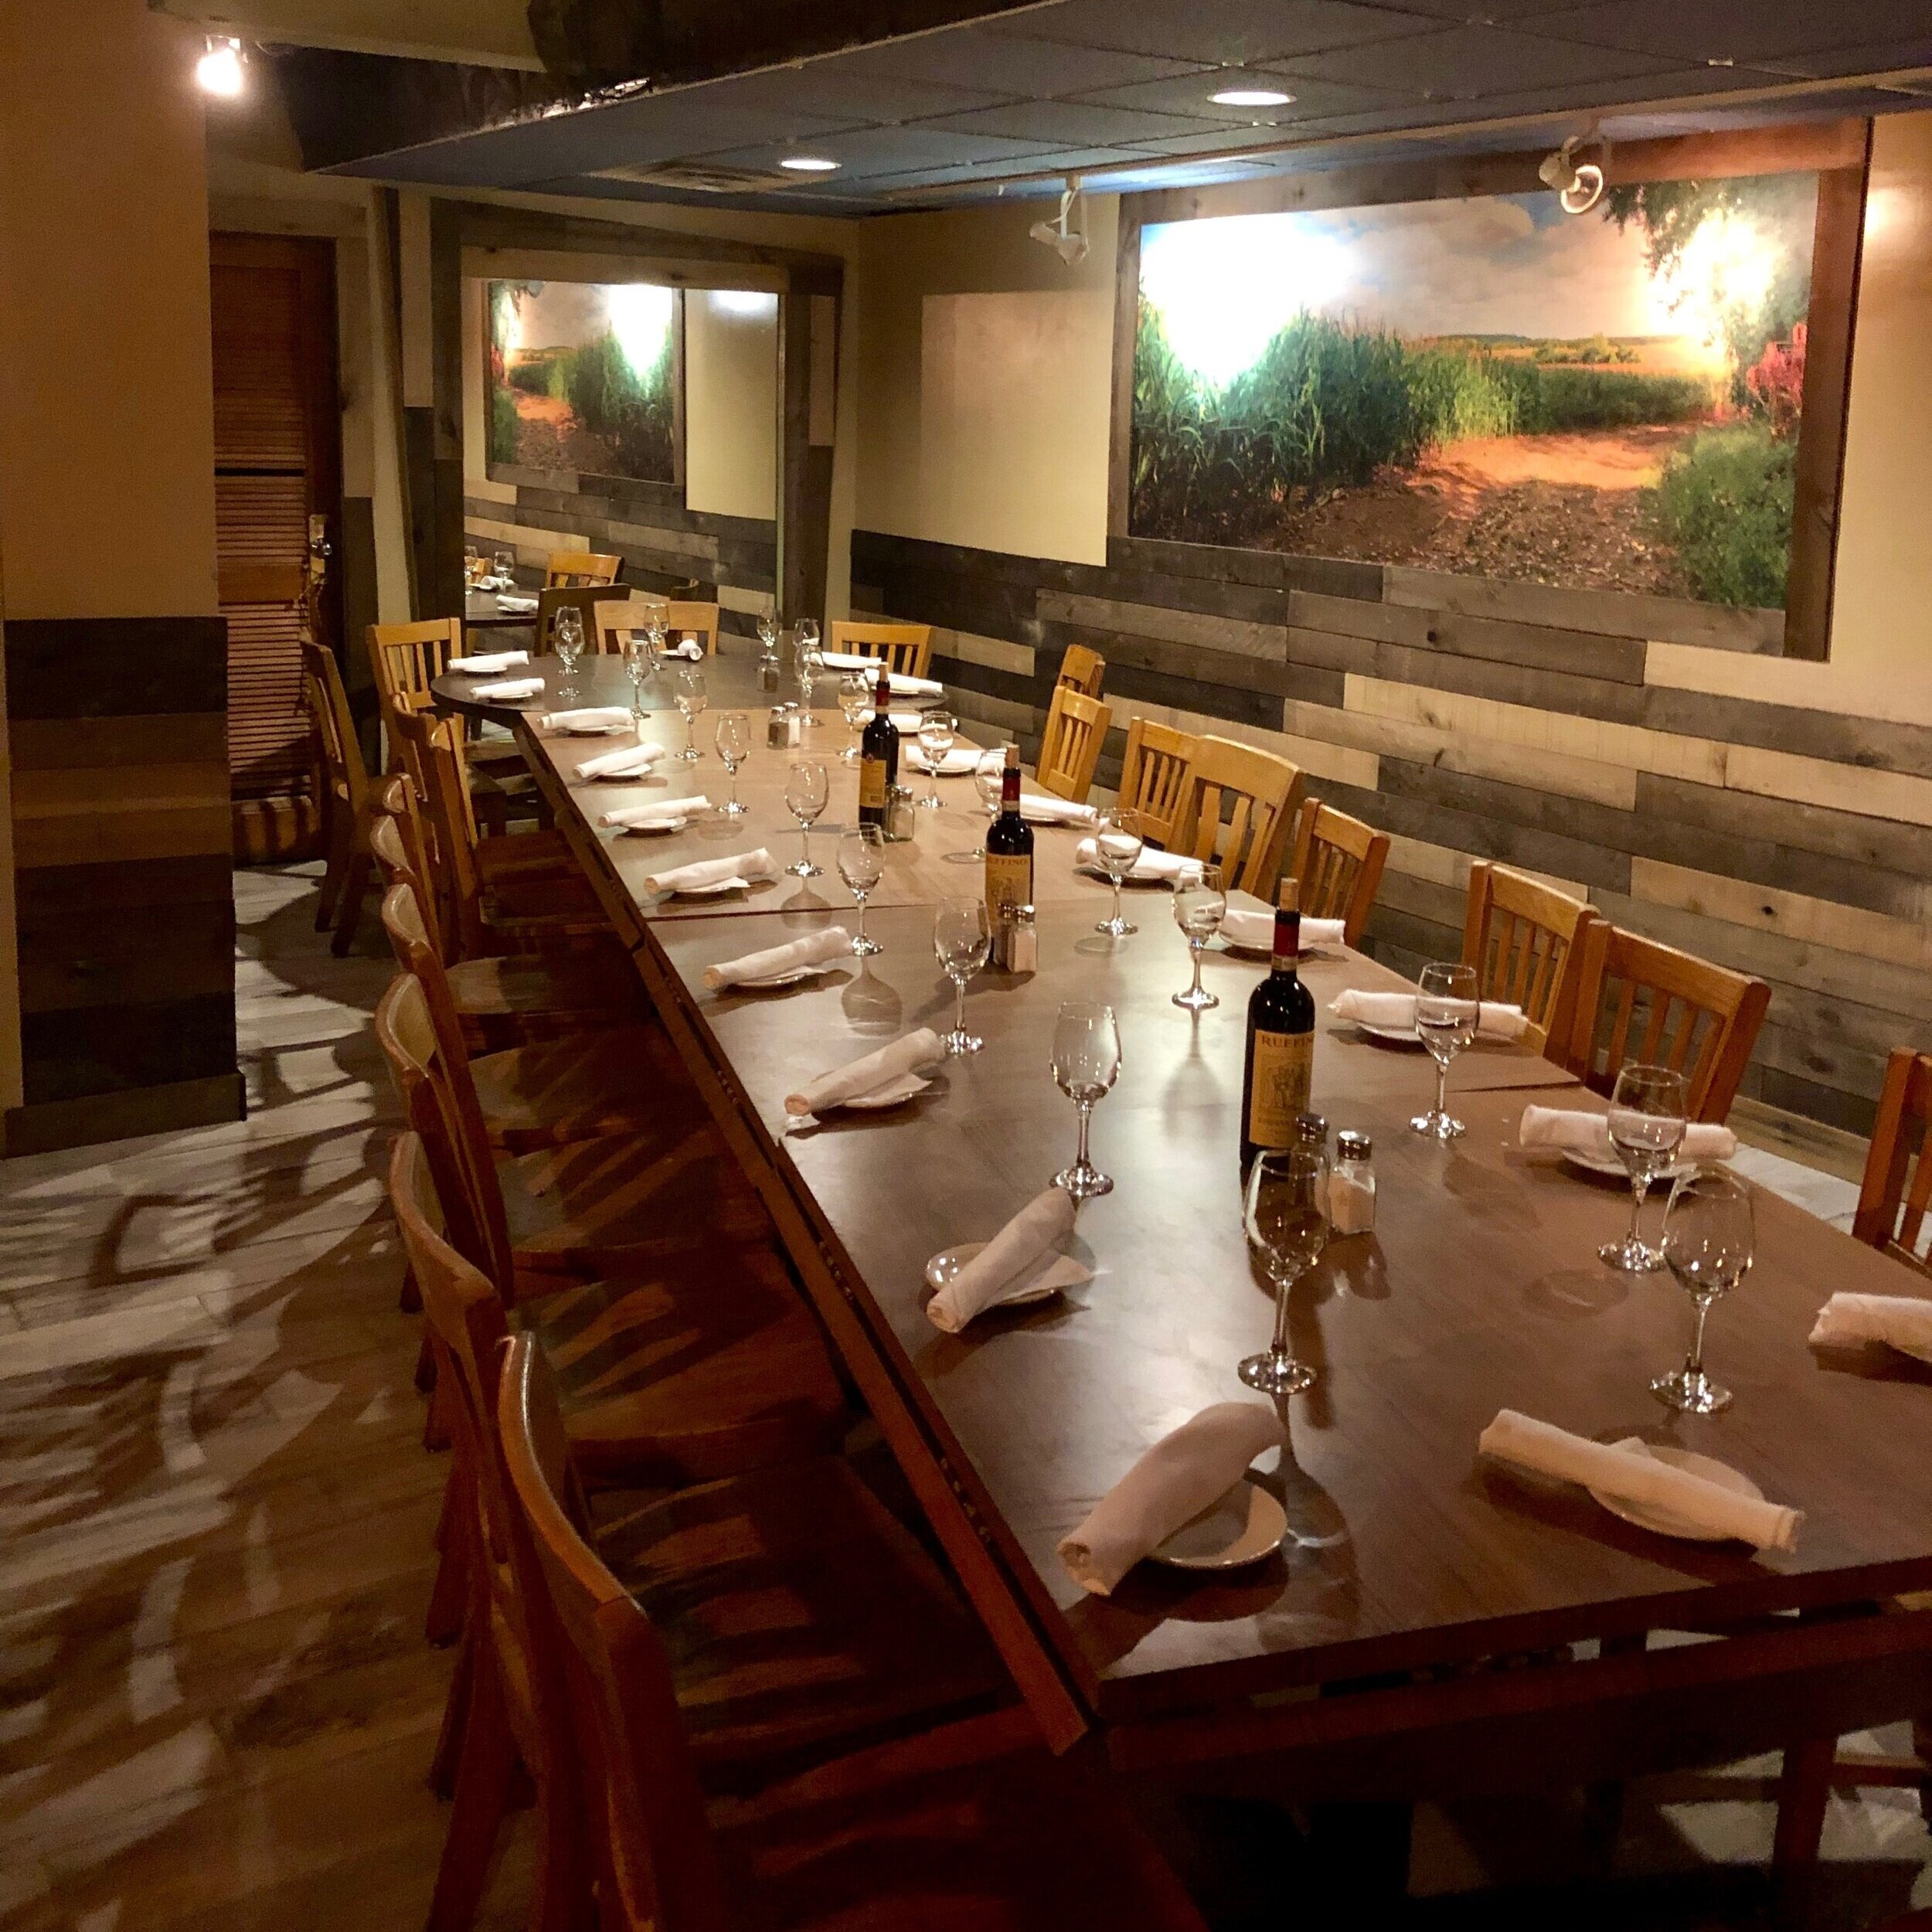 BANQUET SPACE - Our newly remodeled Banquet Hall is located under the main dining room. Featuring reclaimed wood finishes, a tranquil fish tank, and private restrooms. Seating accommodates up to 60 people.